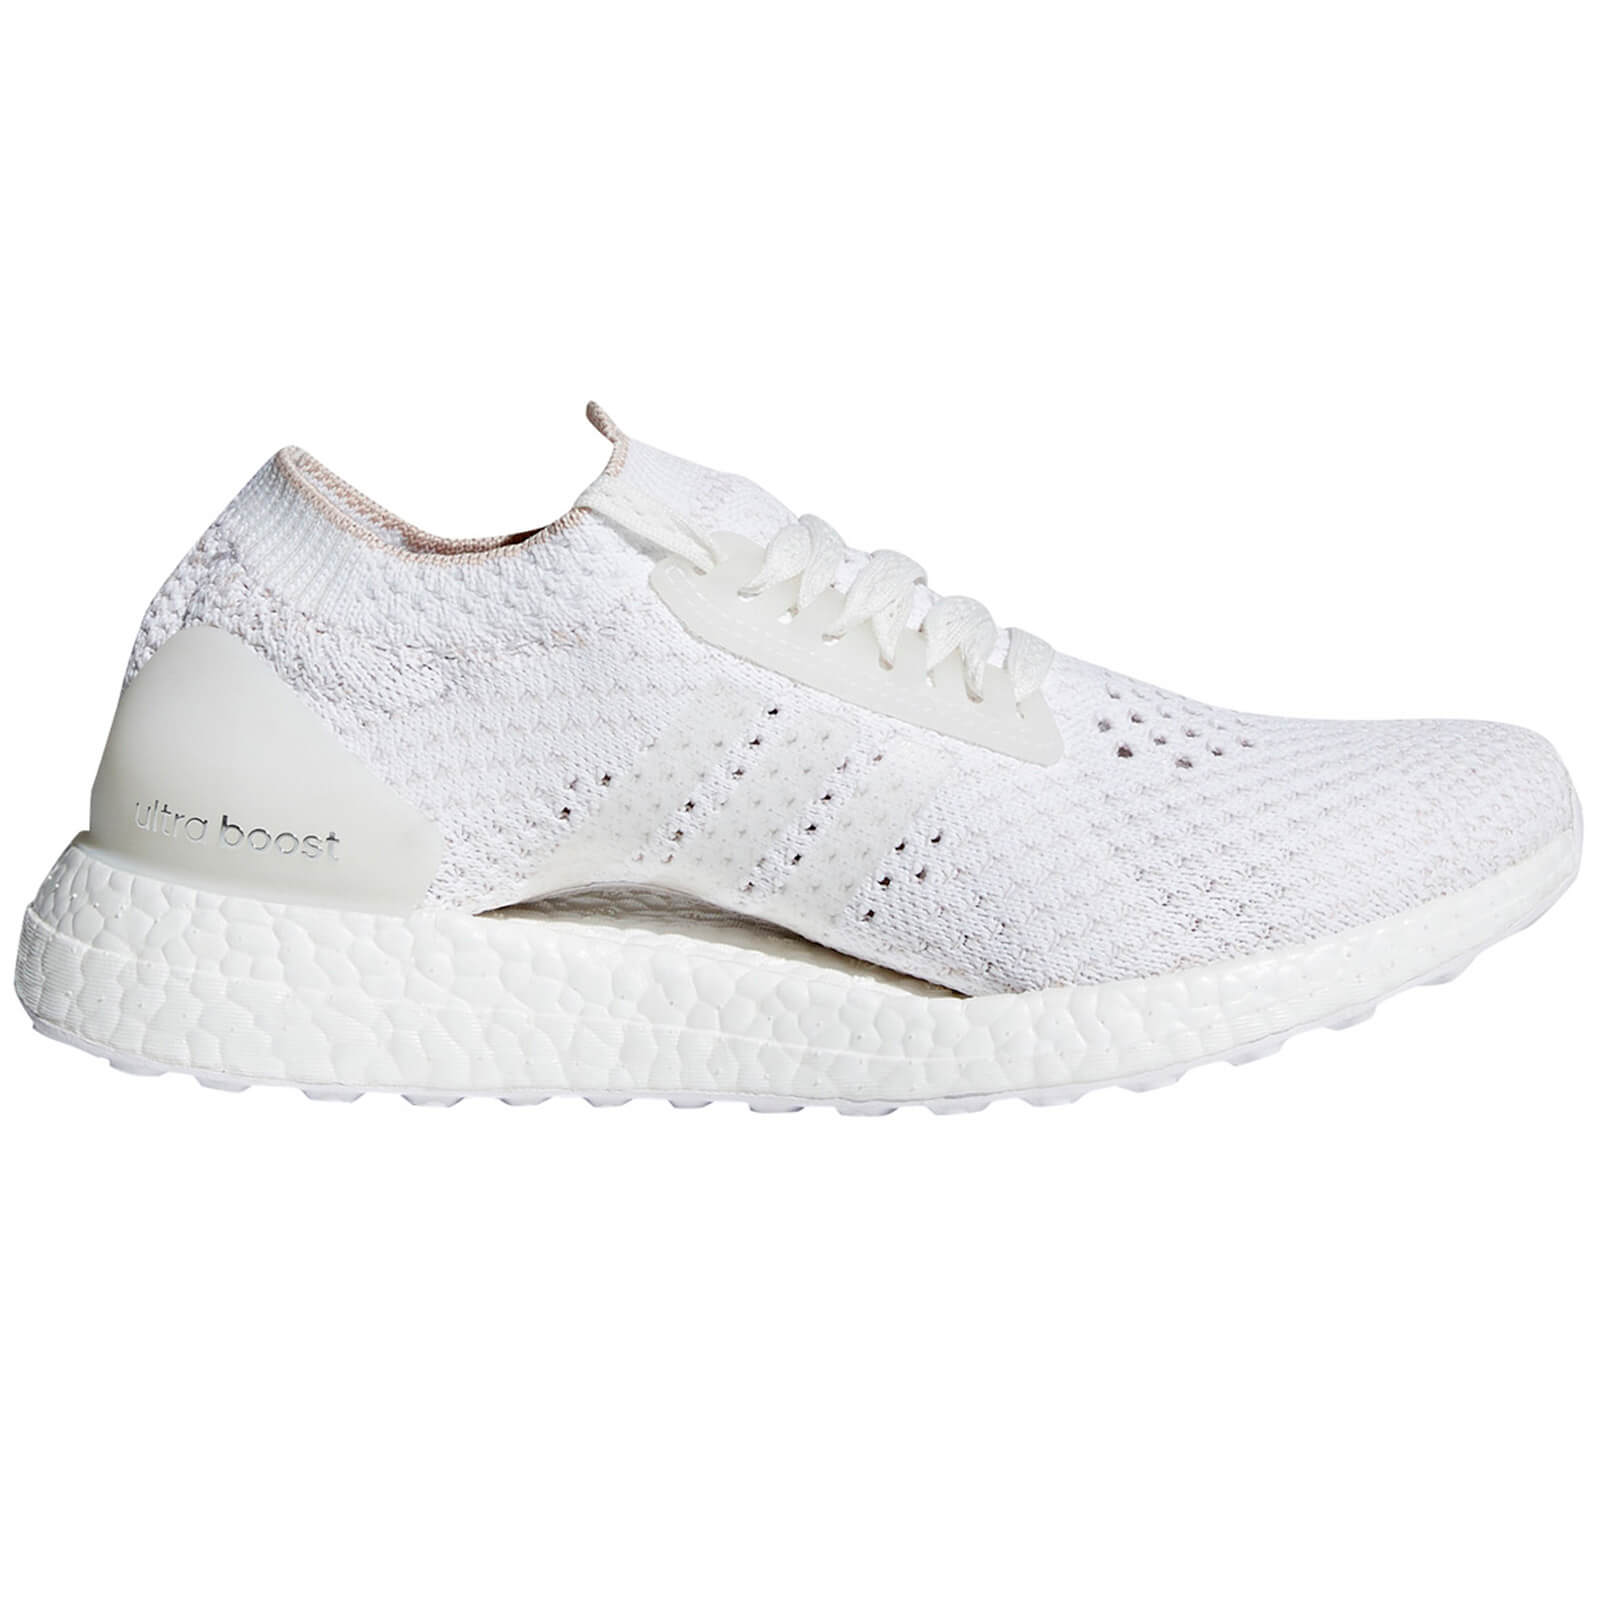 076d13462af40 adidas Women s Ultraboost X Clima Running Shoes - White